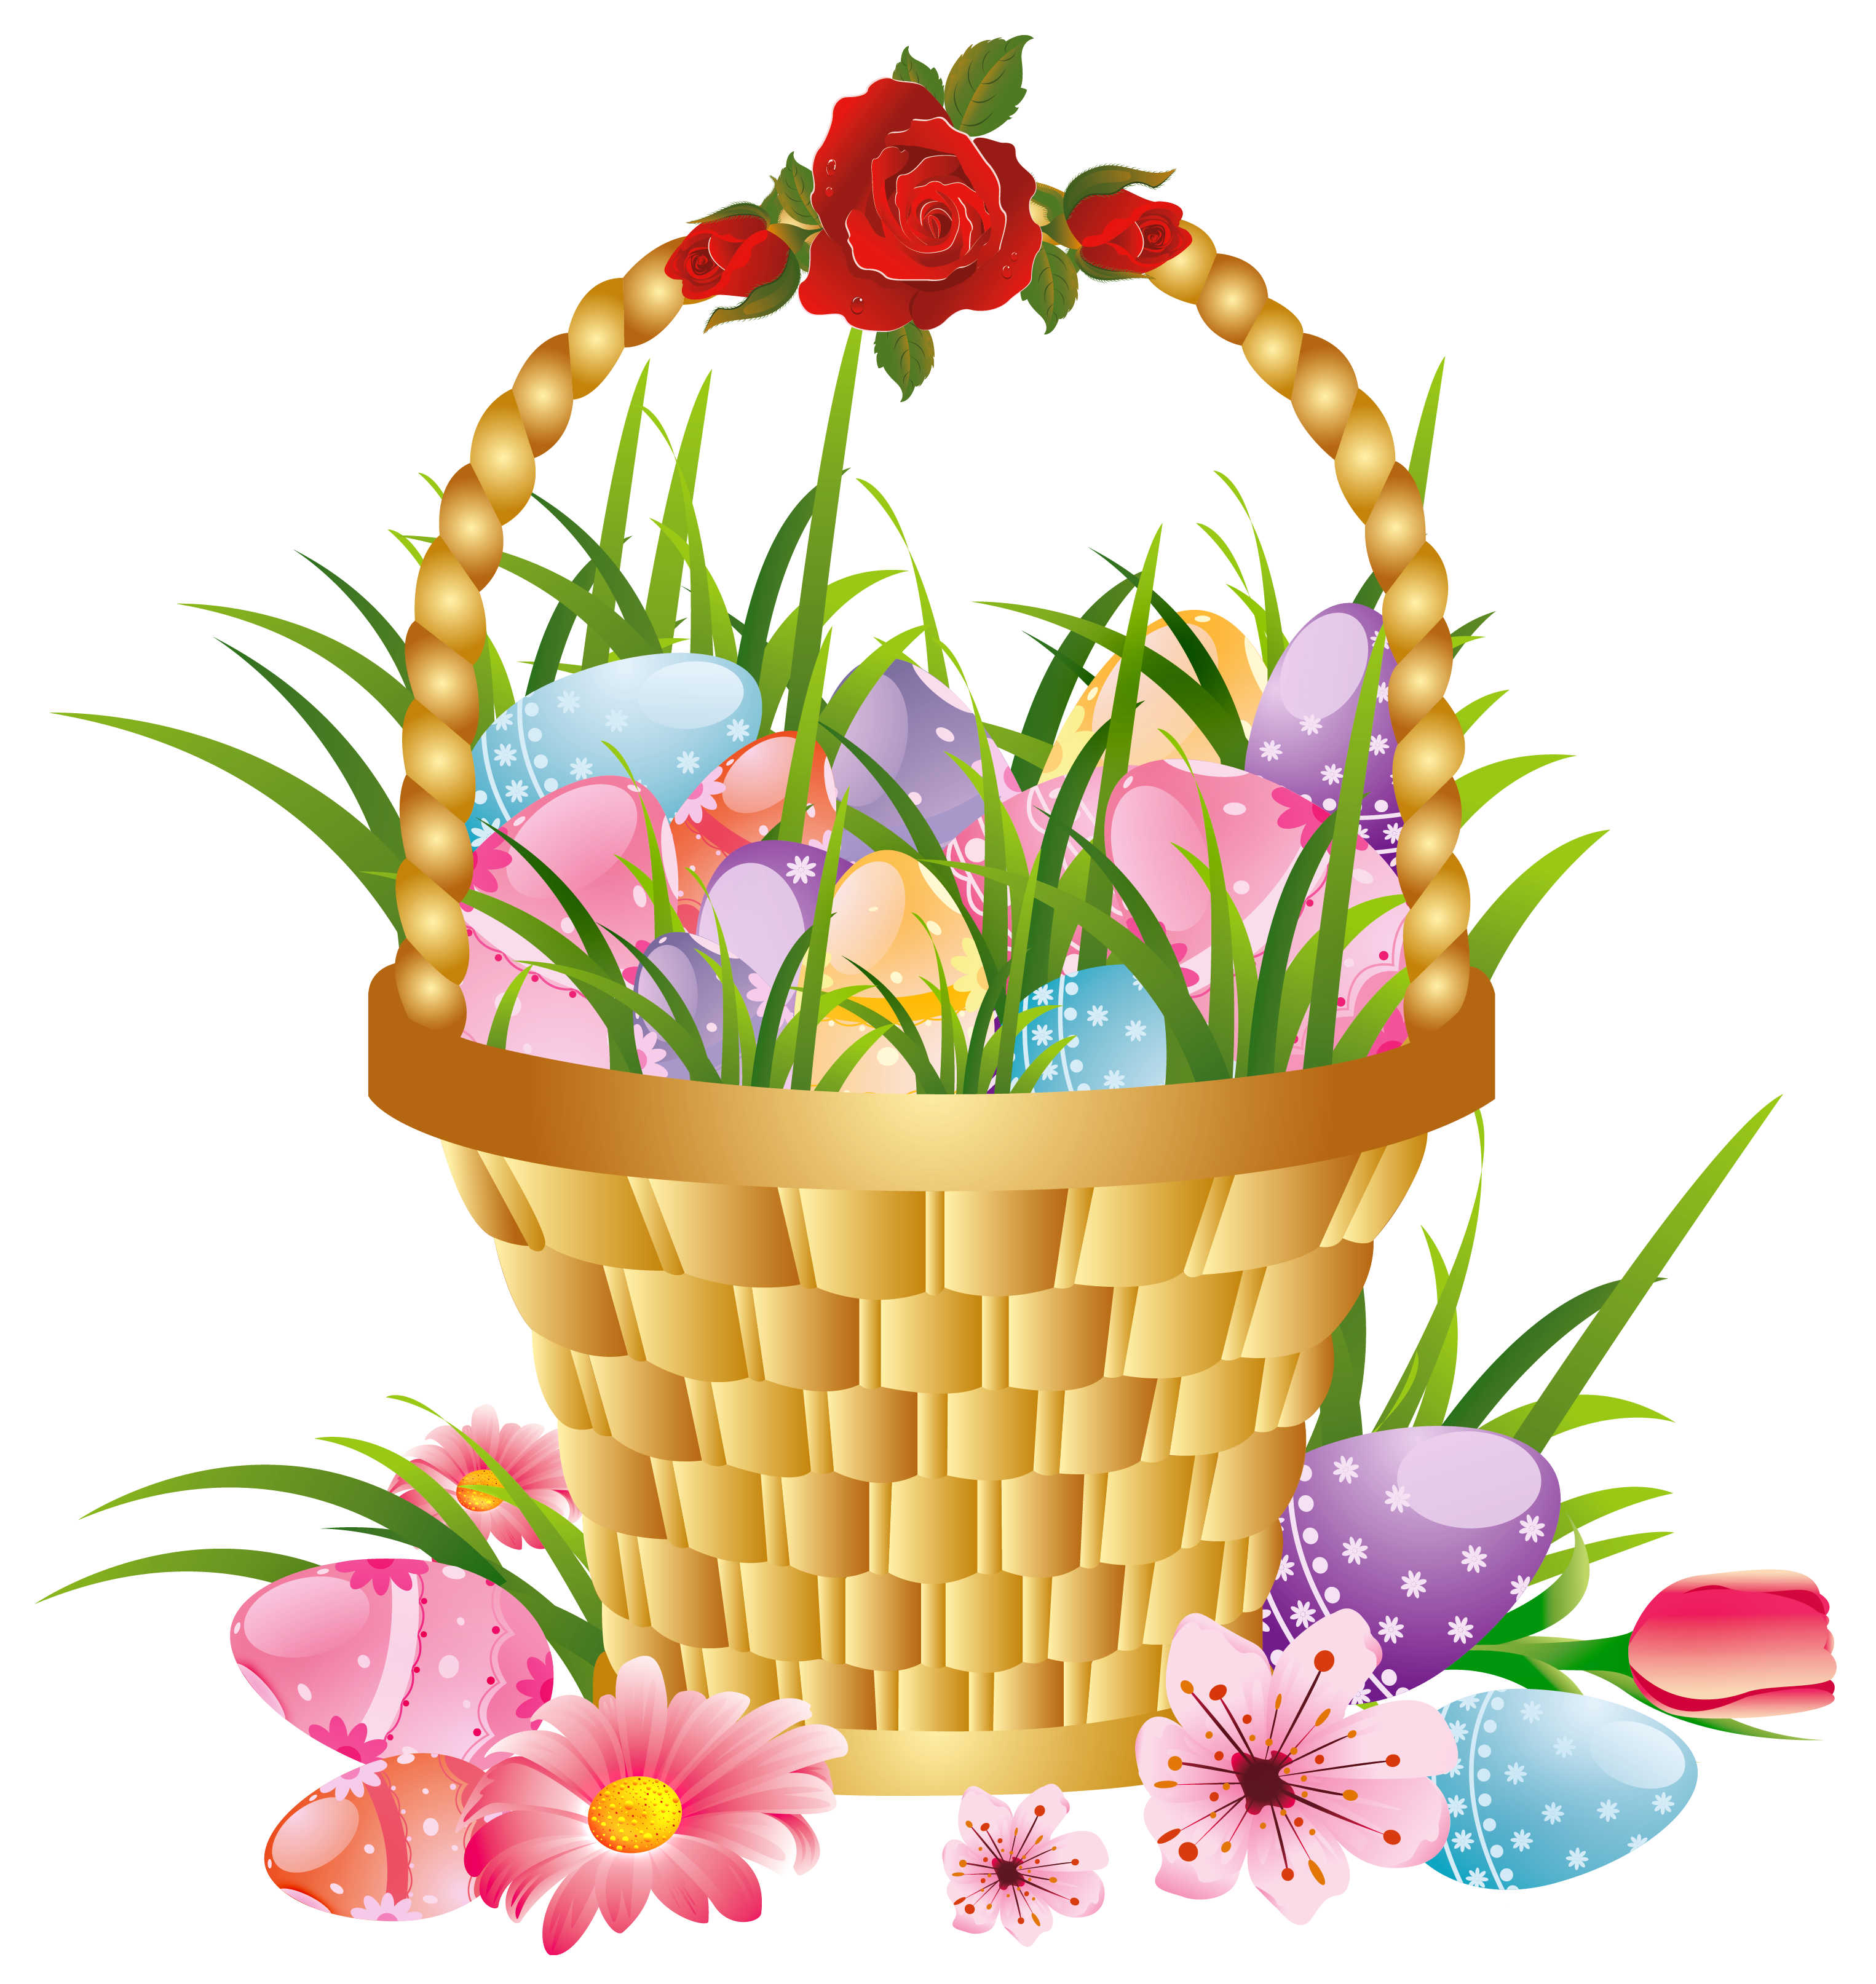 Easter Basket Bunny Png Hd PNG Image - Easter HD PNG